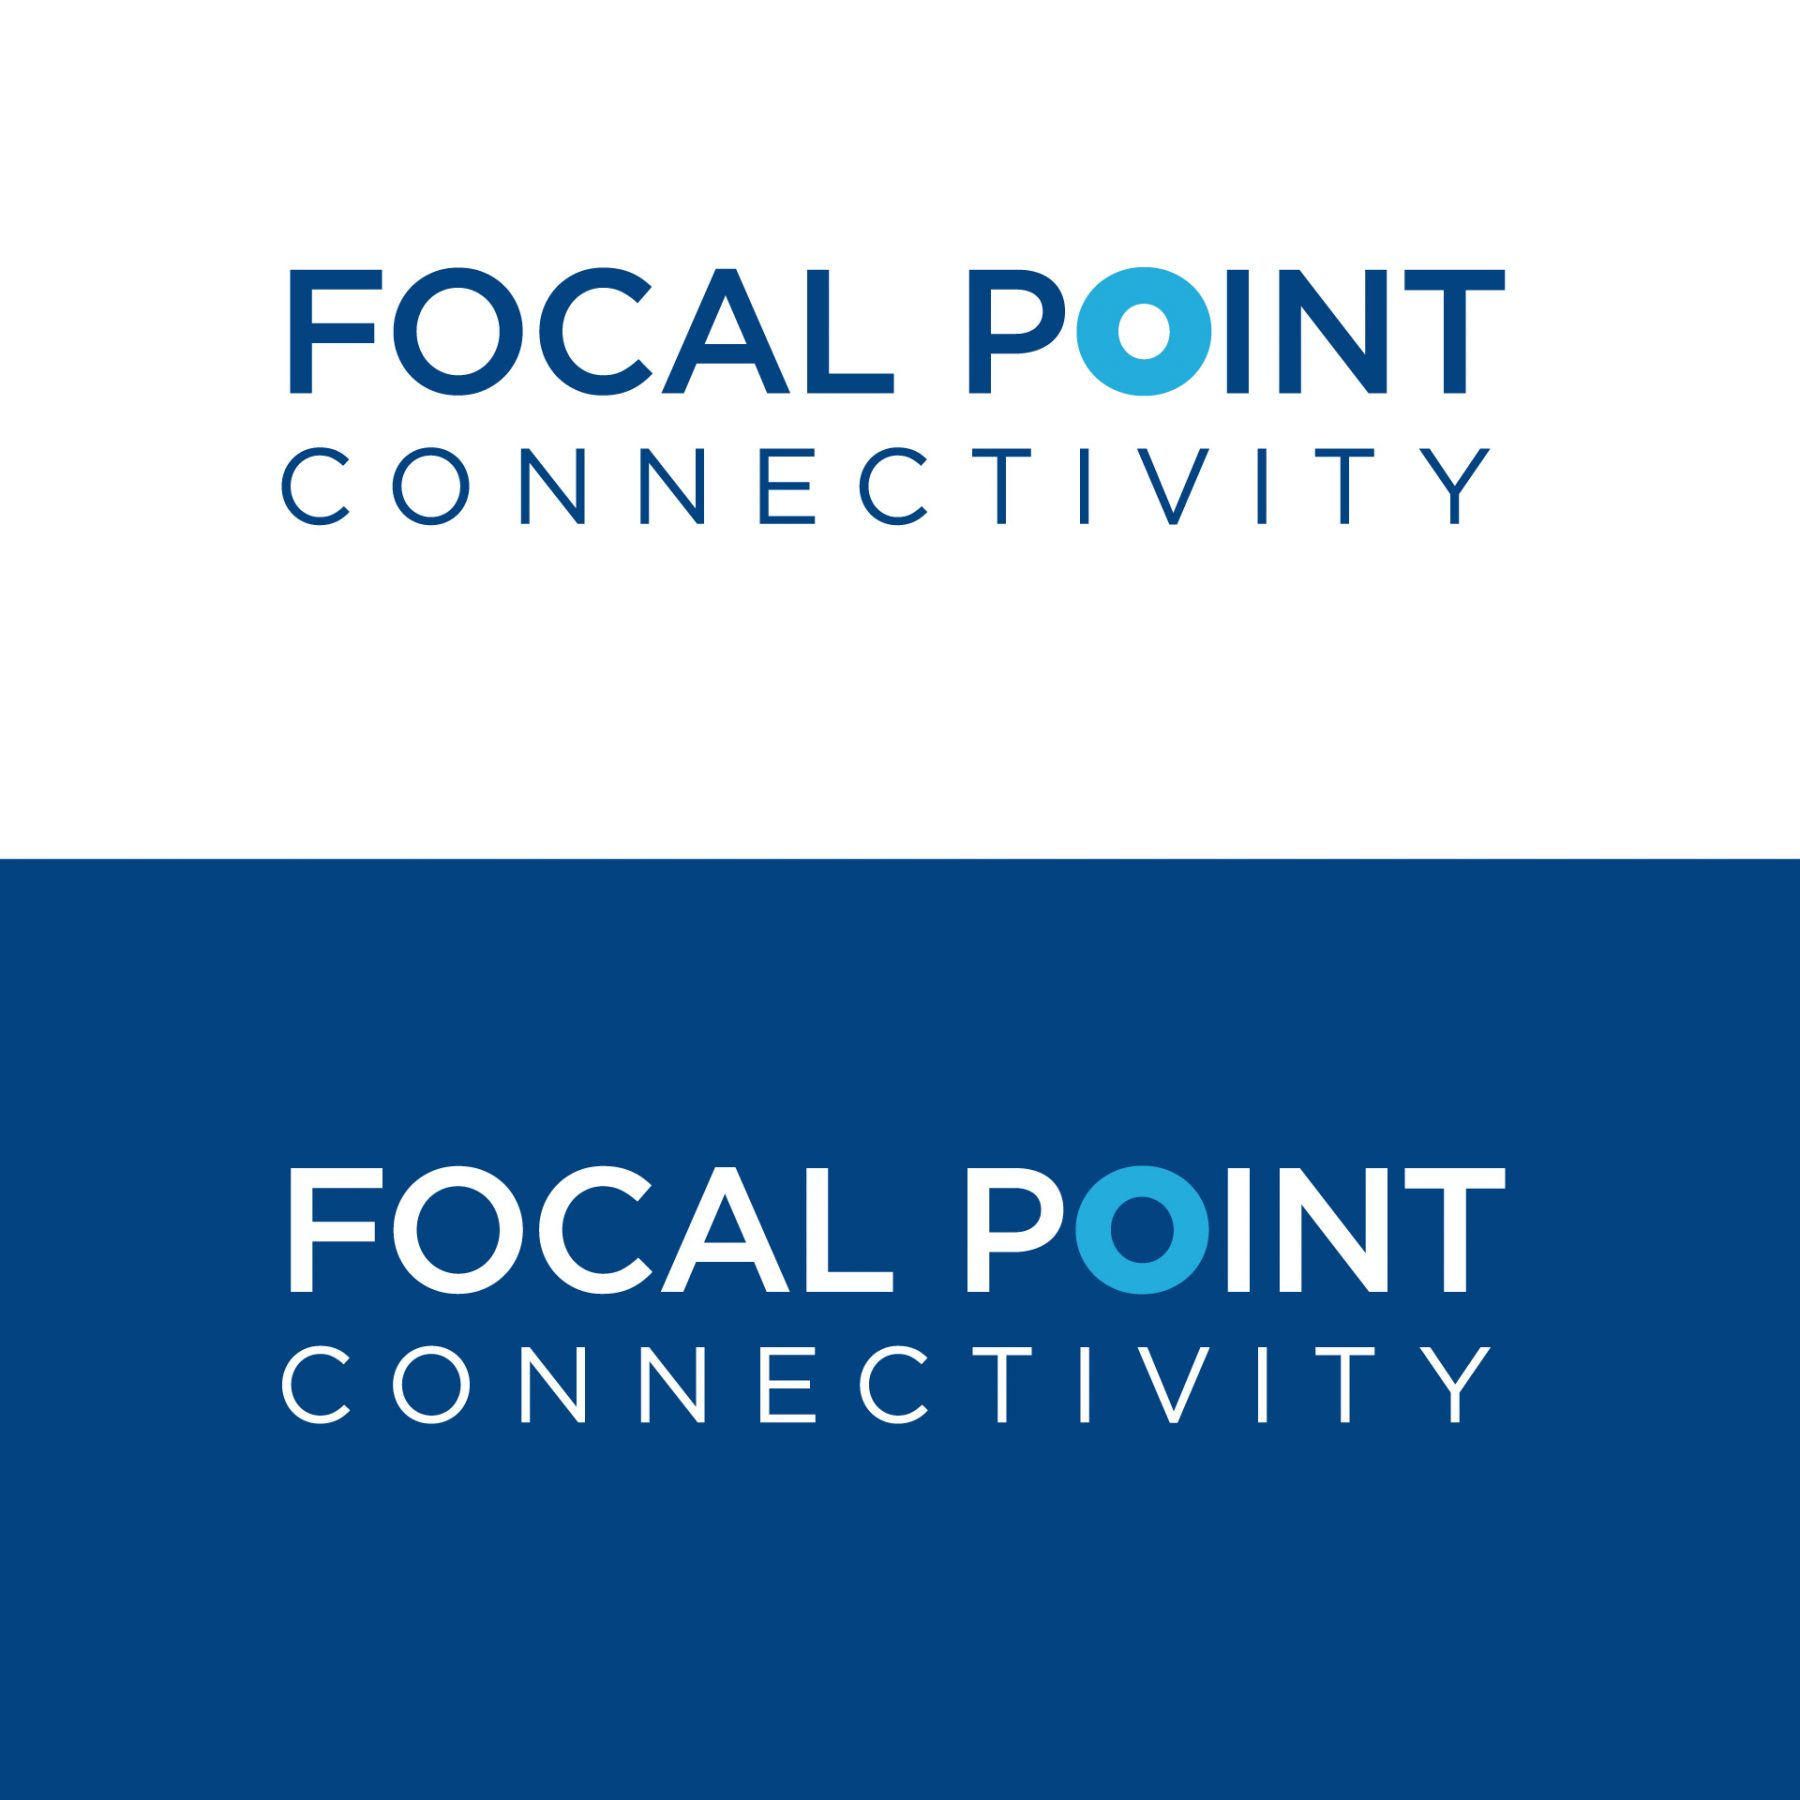 Focal Point Connectivity - logo design